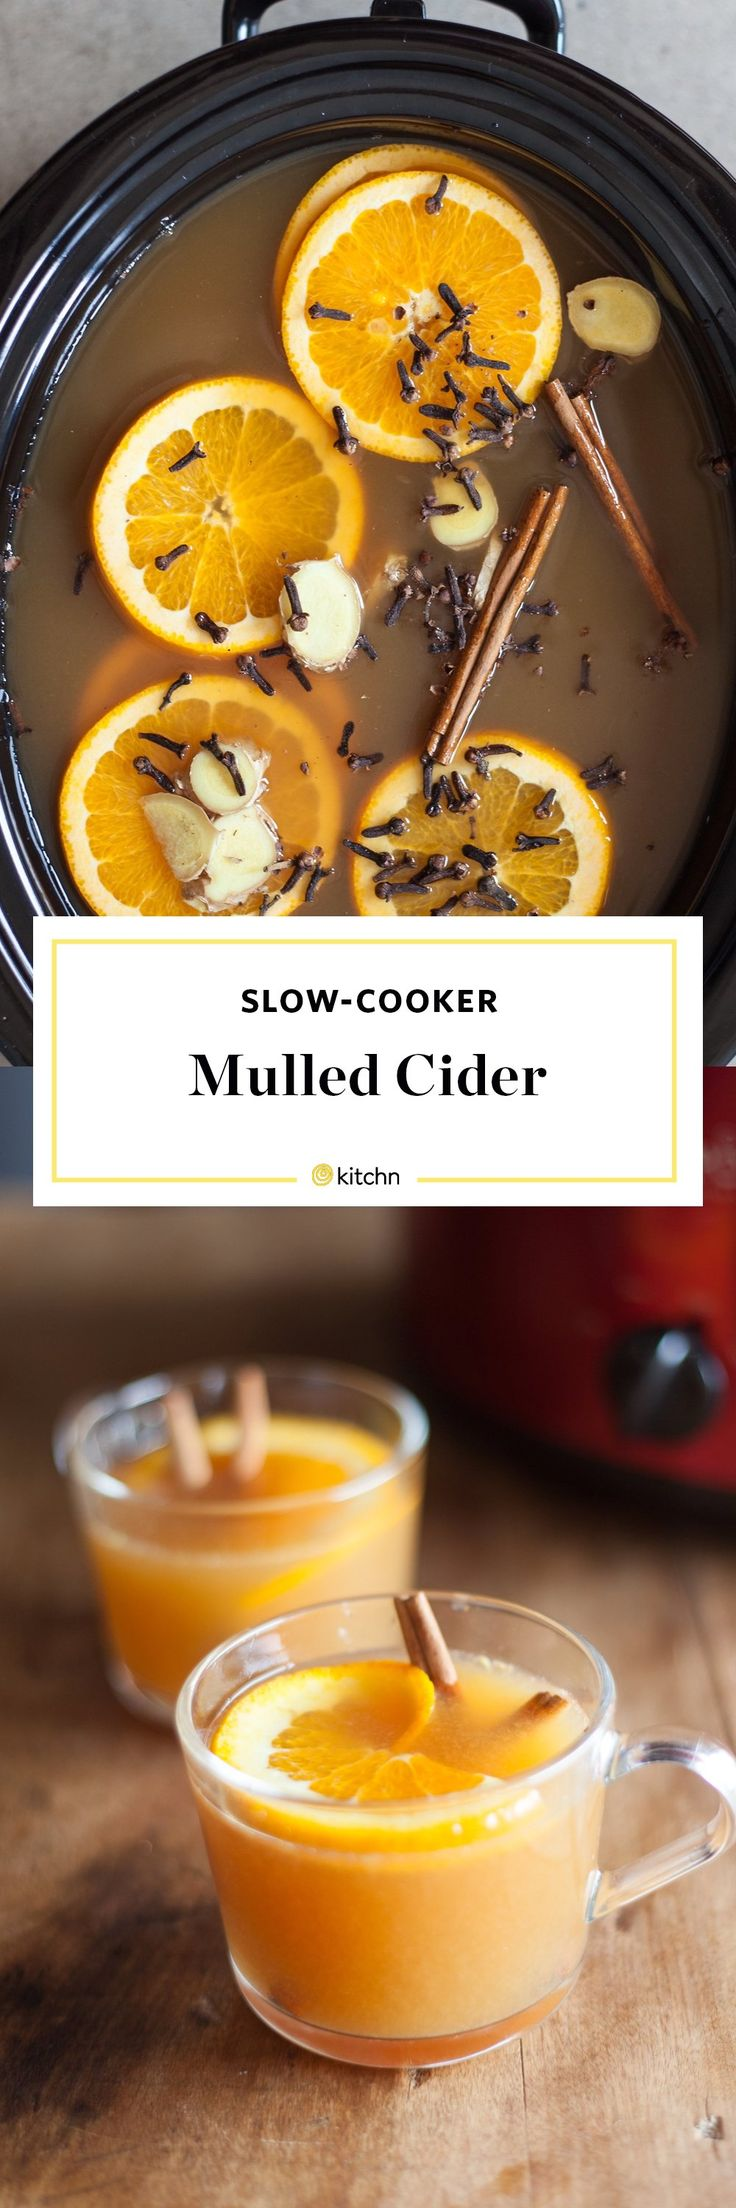 Slow Cooker Mulled Cider Recipe. There's nothing like a warm drink during the weeks of cold weather ahead! This big-batch, cozy nonalcoholic mocktail is great for Halloween, Thanksgiving, or Christmas, and it's SO EASY to make for a crowd in your crockpot or slow cooker! Try with bourbon, dark rum, or brandy